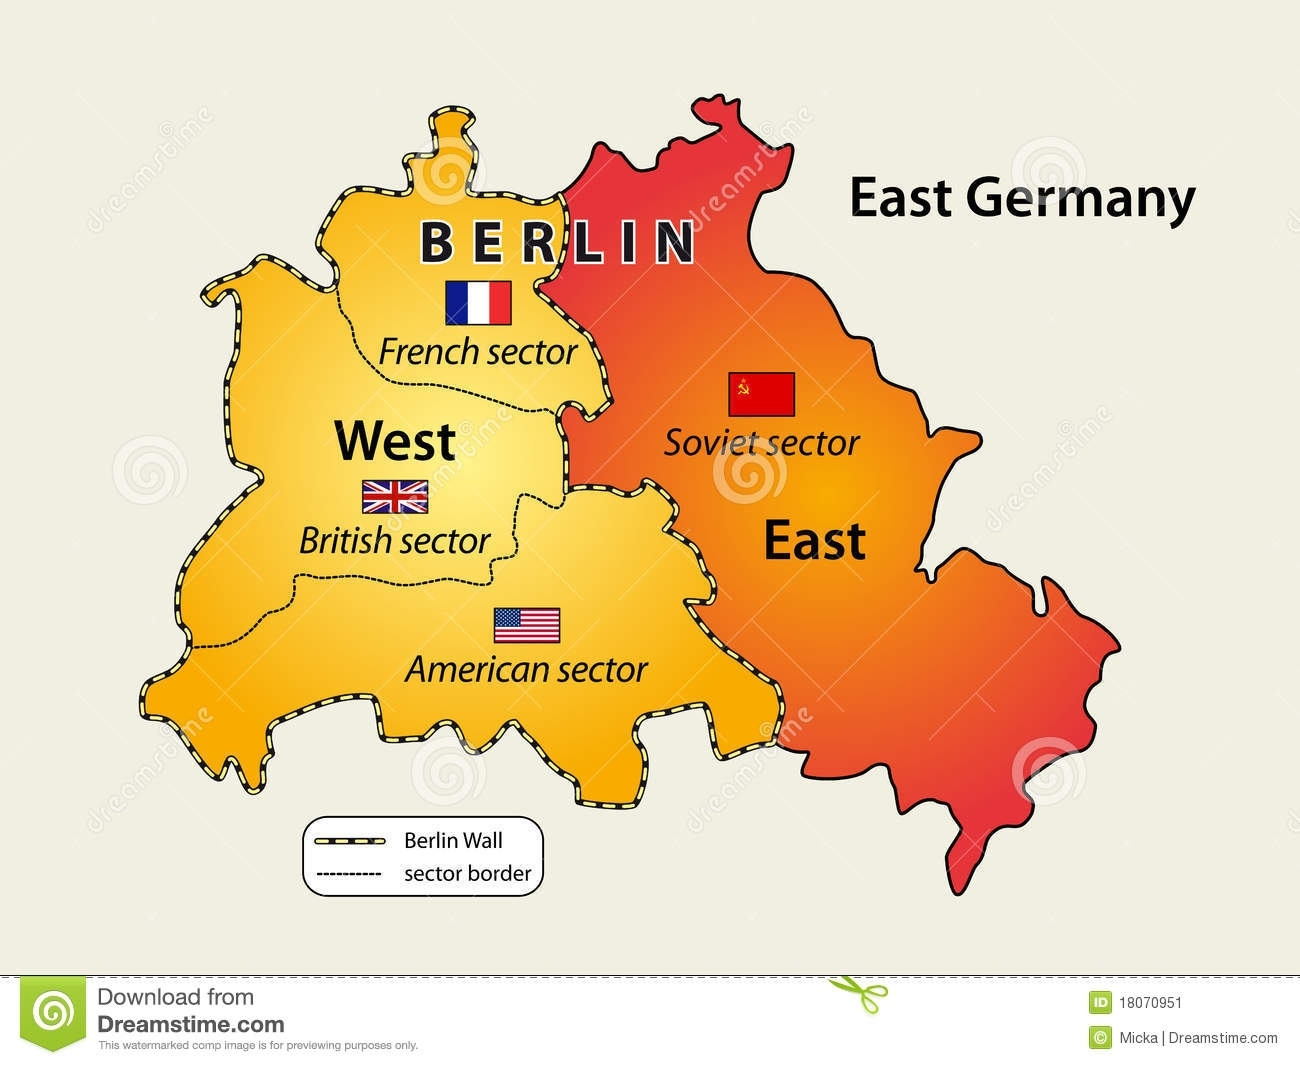 Divided Berlin Stock Vector. Illustration Of East, German - 18070951 pertaining to East West Germany Map Berlin Wall